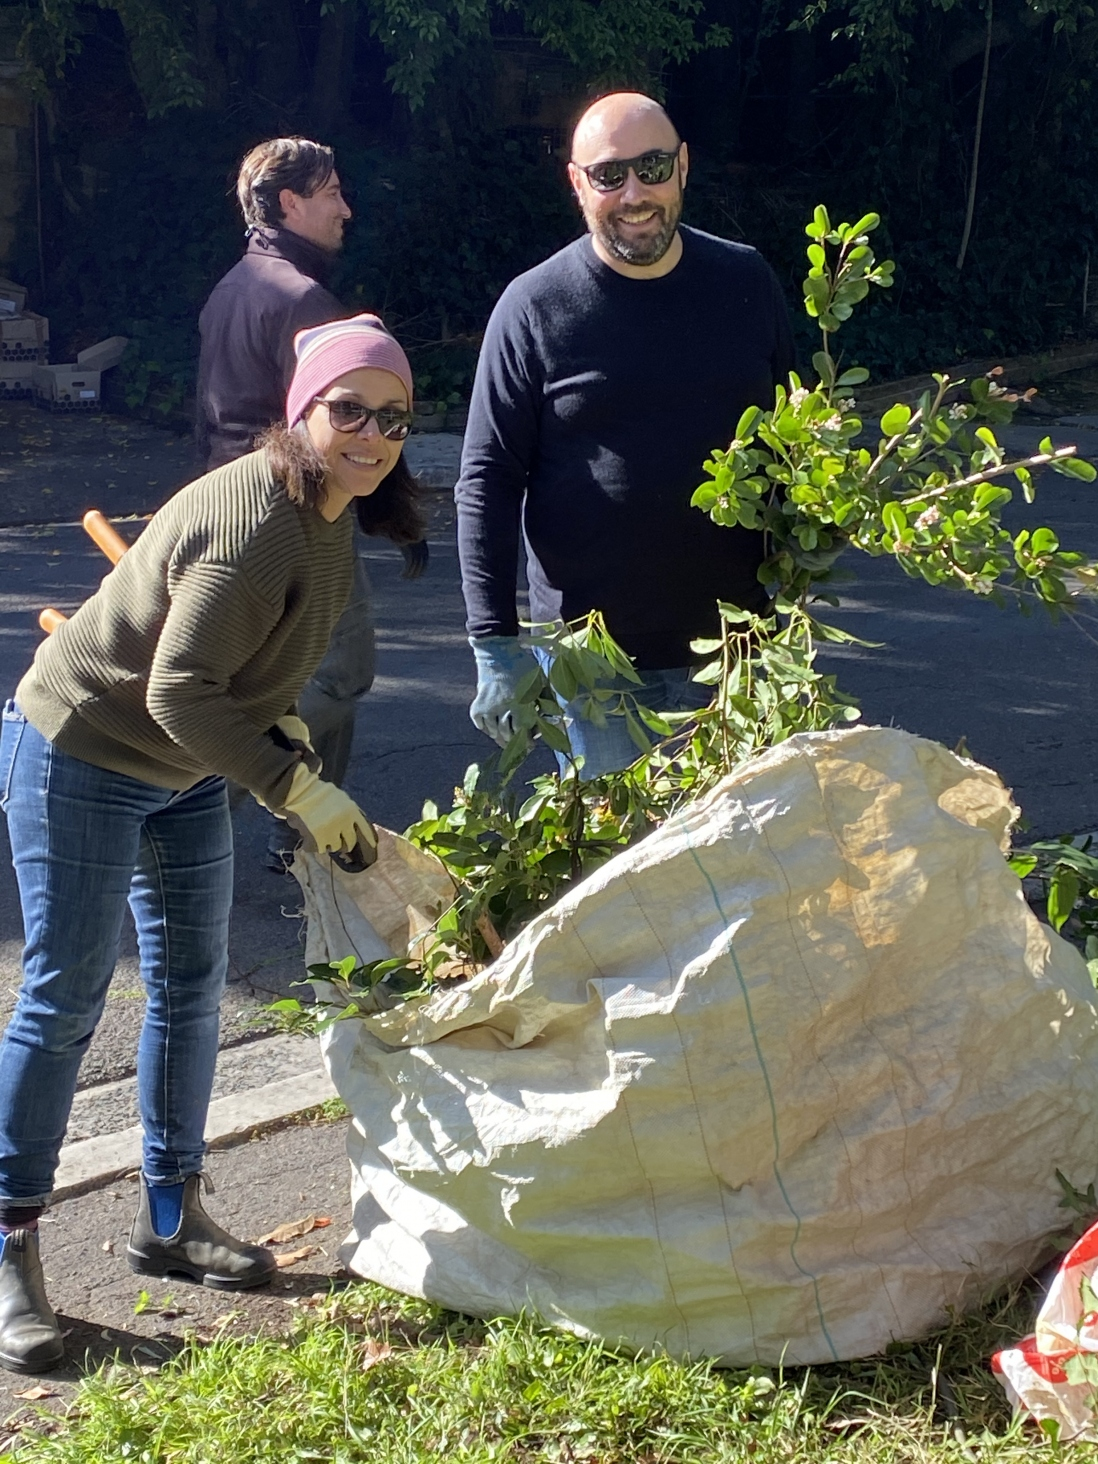 Two SLM staff load up Green waste into a bag for removal at Vaucluse House.